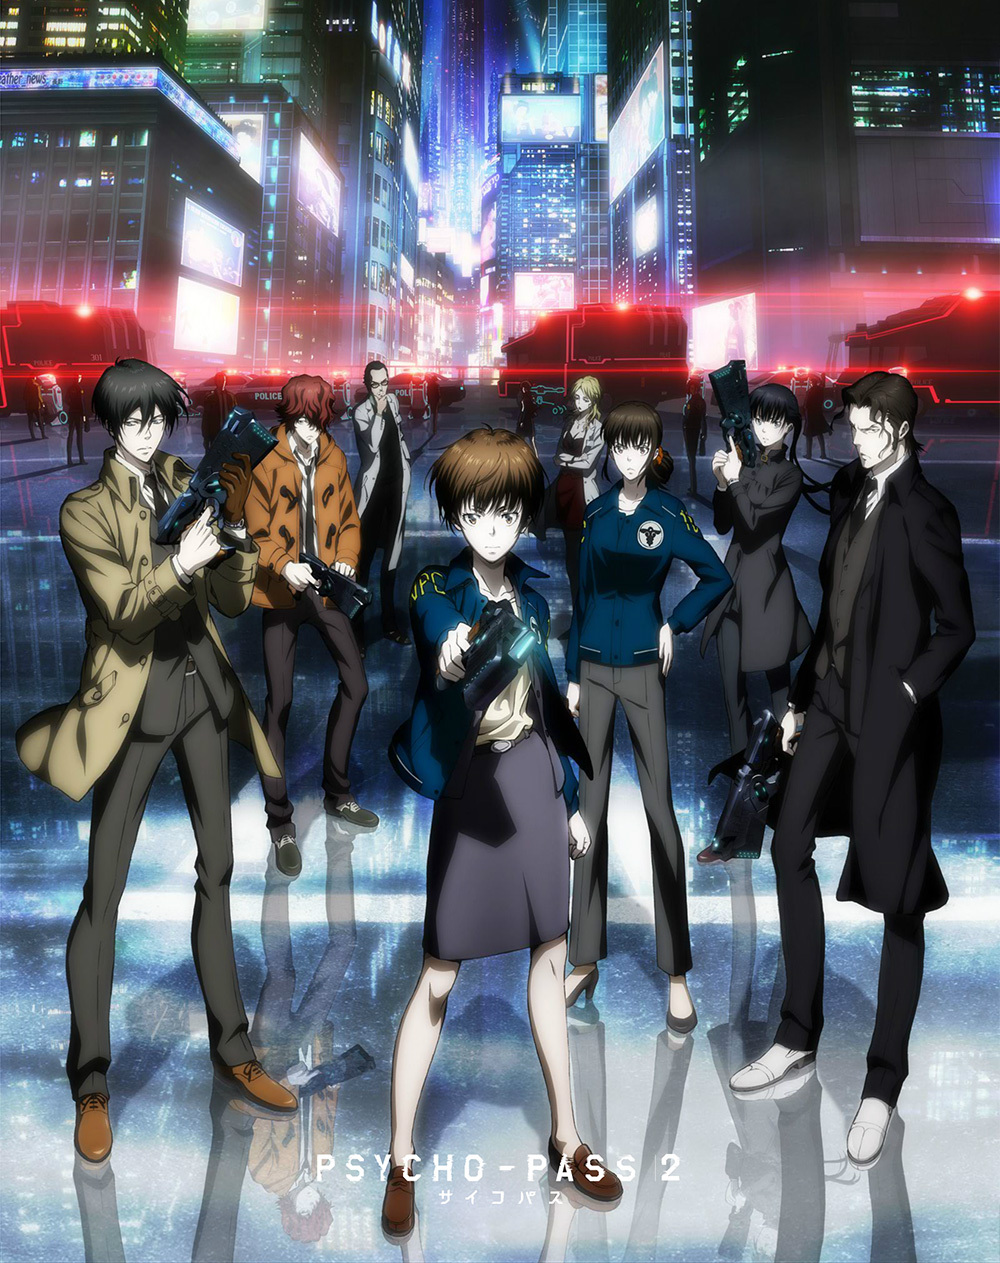 Psycho Pass 2 (2014) 720p .mp4 Jap Sub-Ita